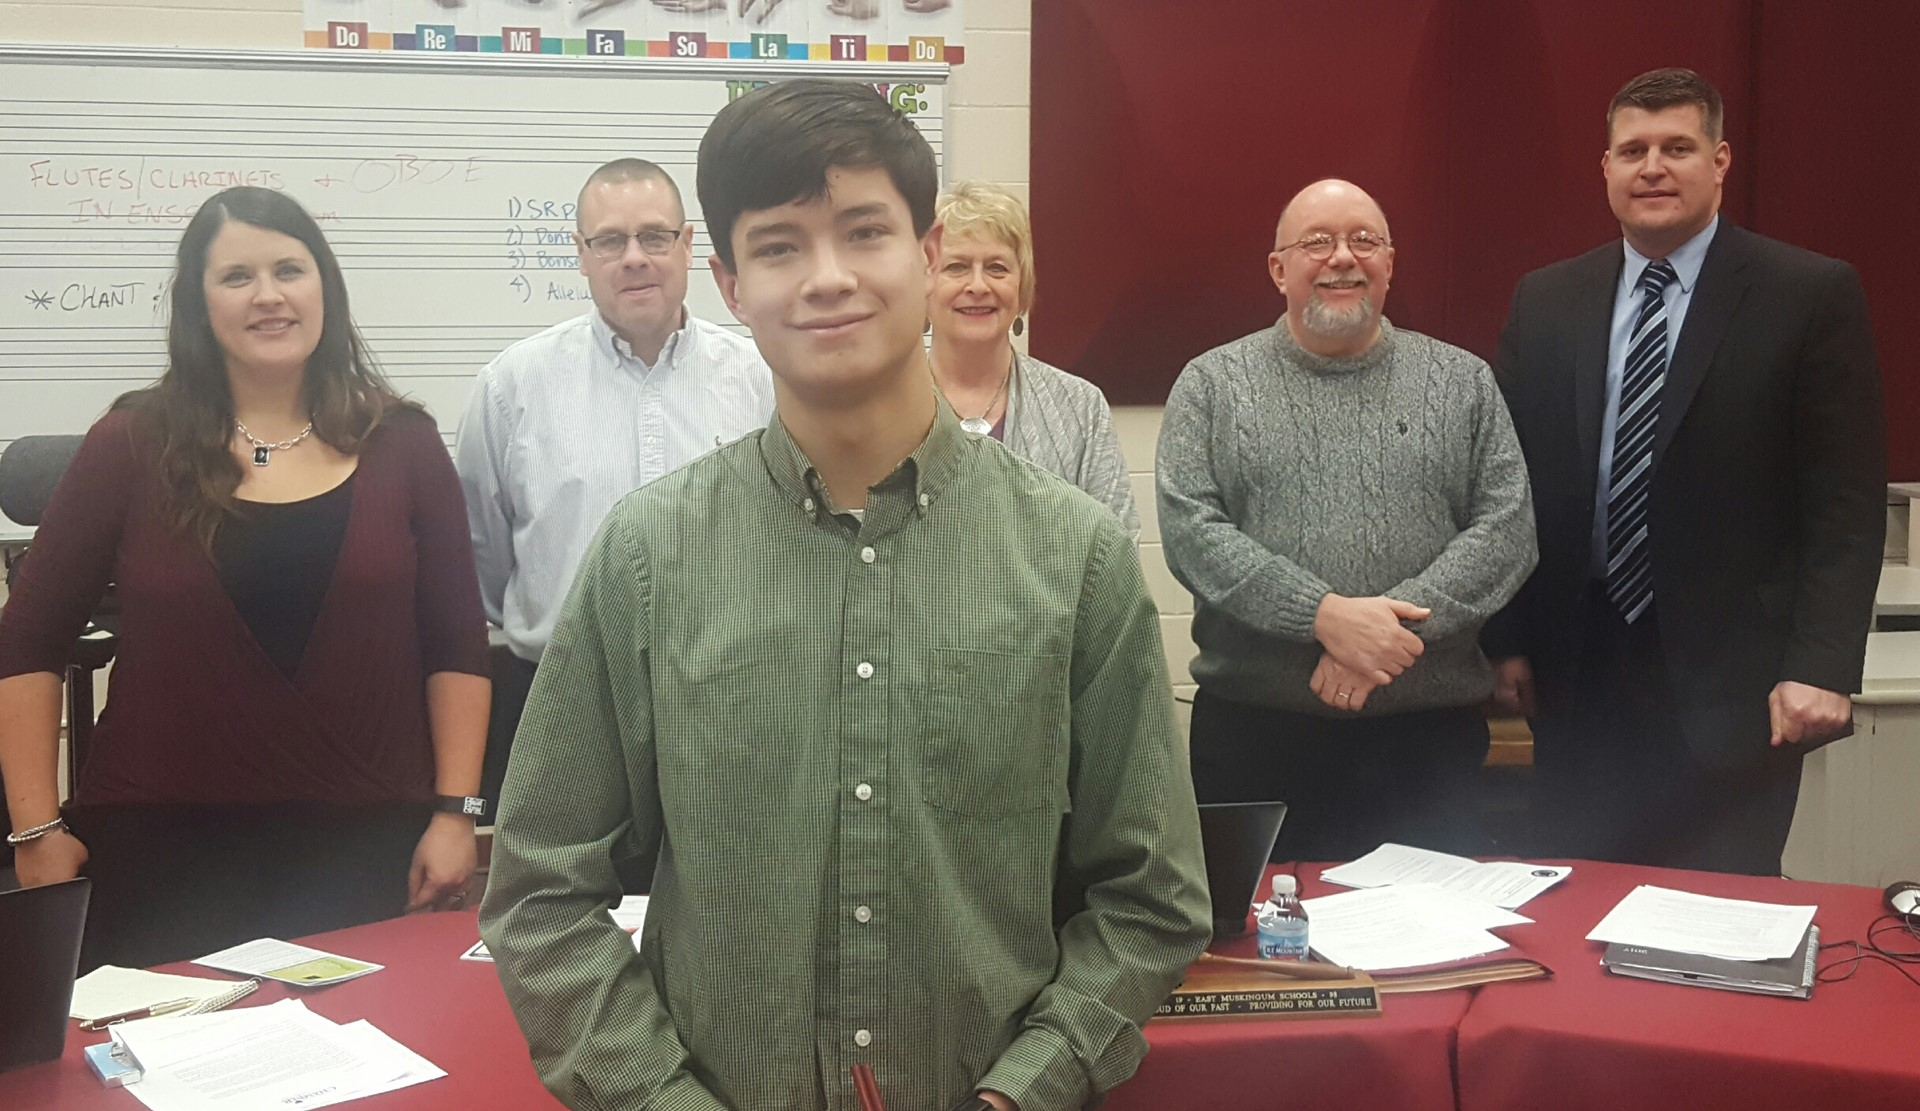 Bennett Van Horn, JGHS senior, was recognized at the February Board of Education meeting as a Martin Luther King Jr. scholarship recipient